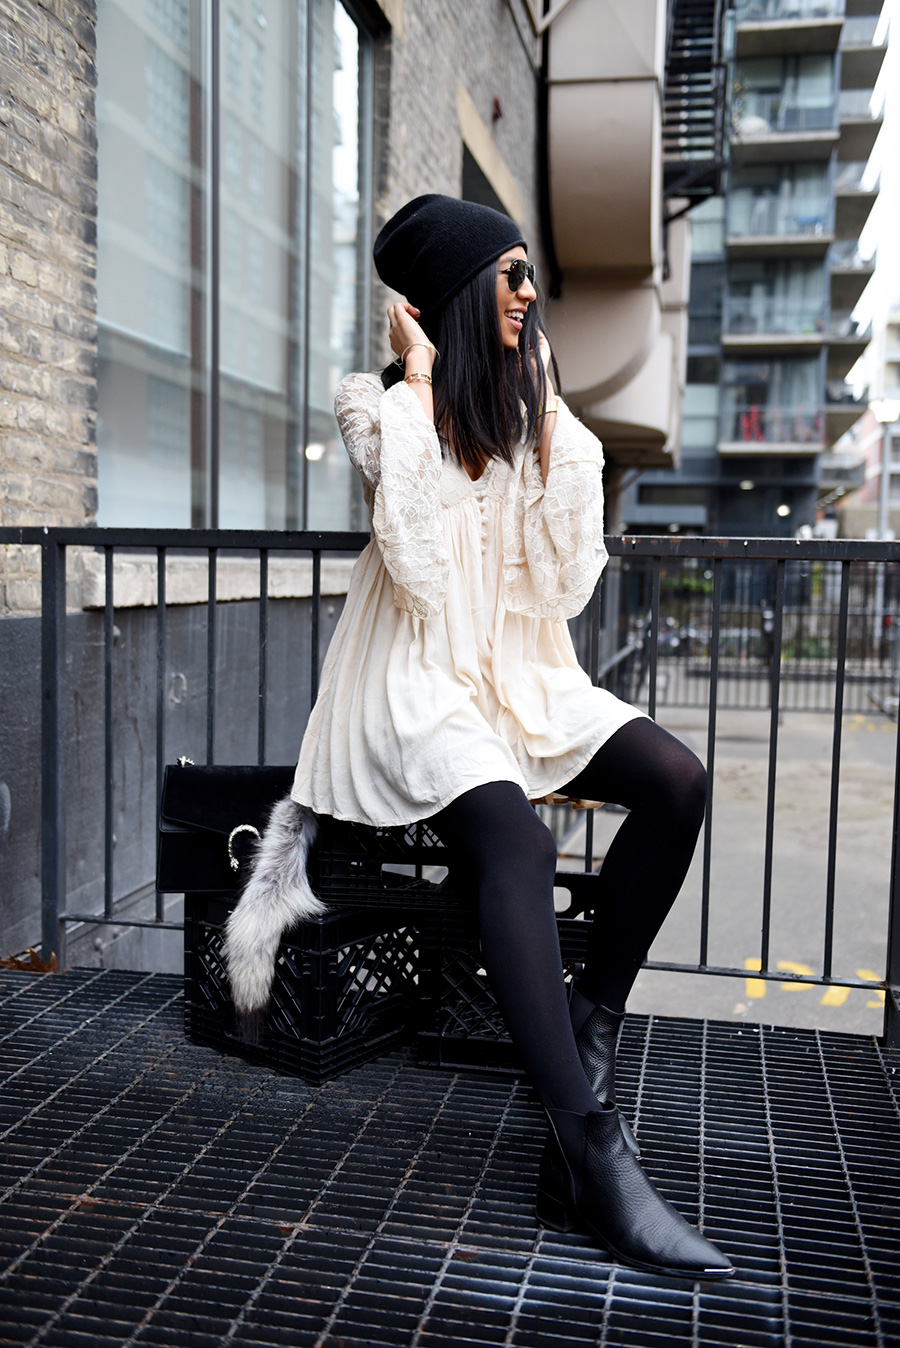 The bell sleeve and lace trends can go absolutely hand in hand, as seen here in this gorgeous cream lace dress with sleeve detailing. Kayla Seah wears this look with Chelsea boots and a cute black beanie. Dress: Free People, Boots: Acne, Bag: Gucci, Beanie: Halogen.